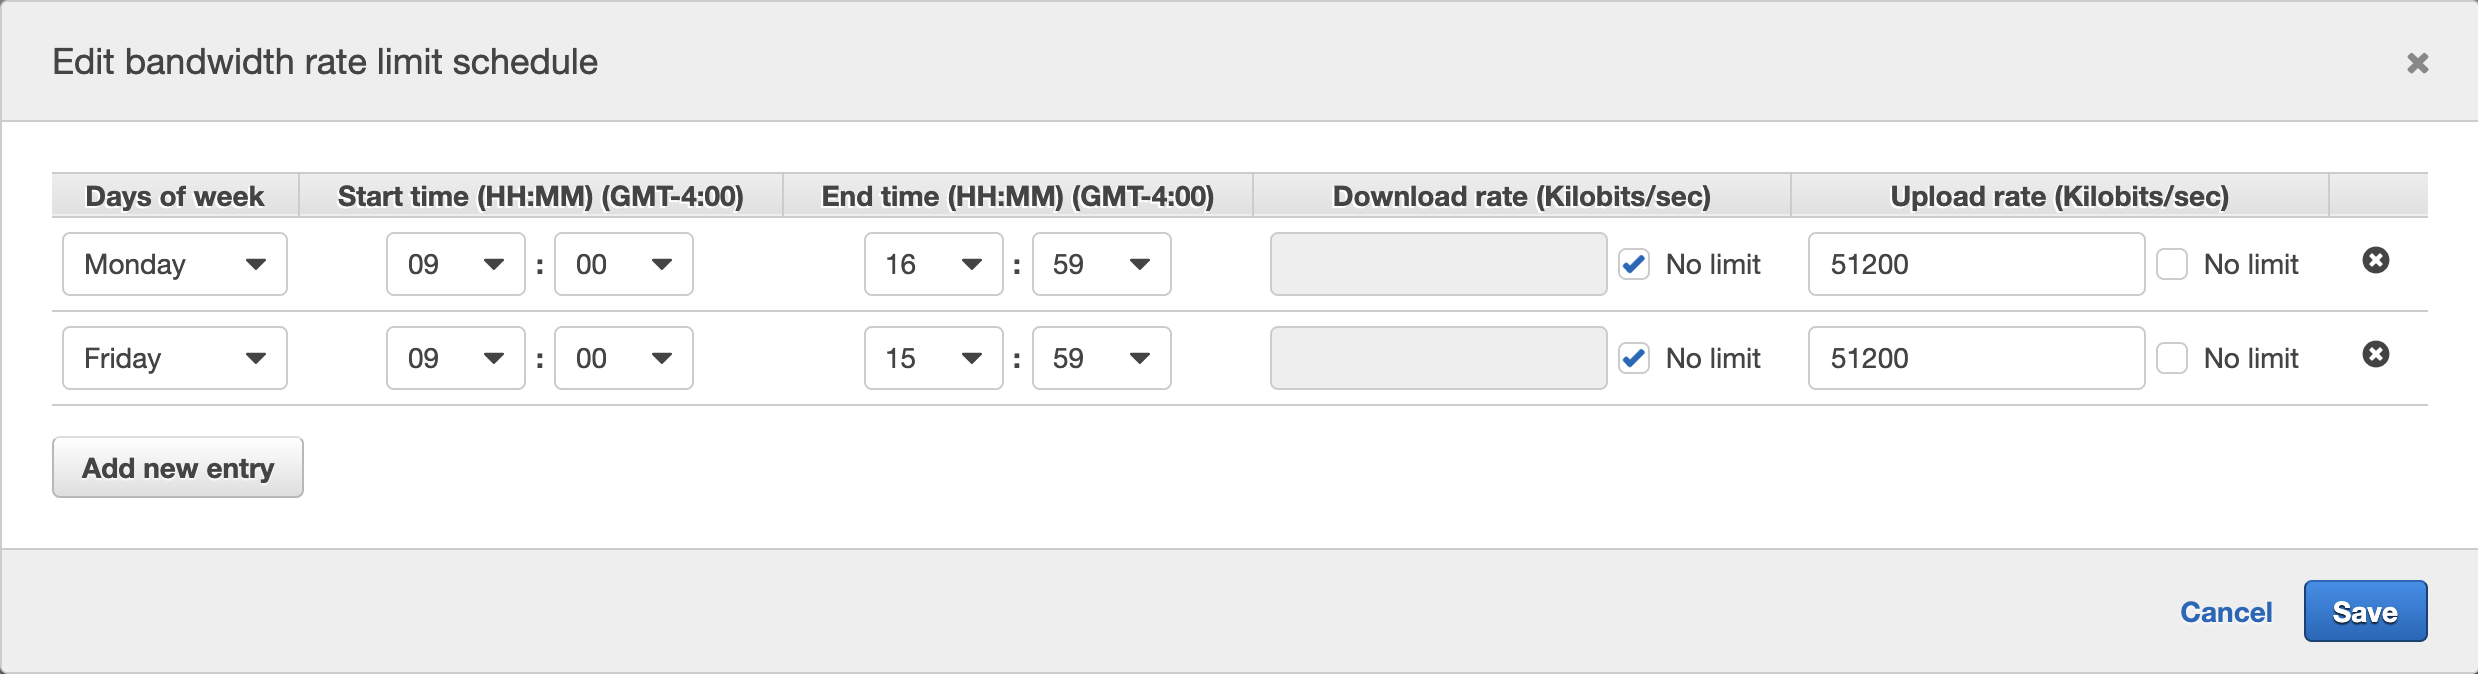 You can easily configure the schedule-based network bandwidth throttling based on your timing, download rate, and upload rate values